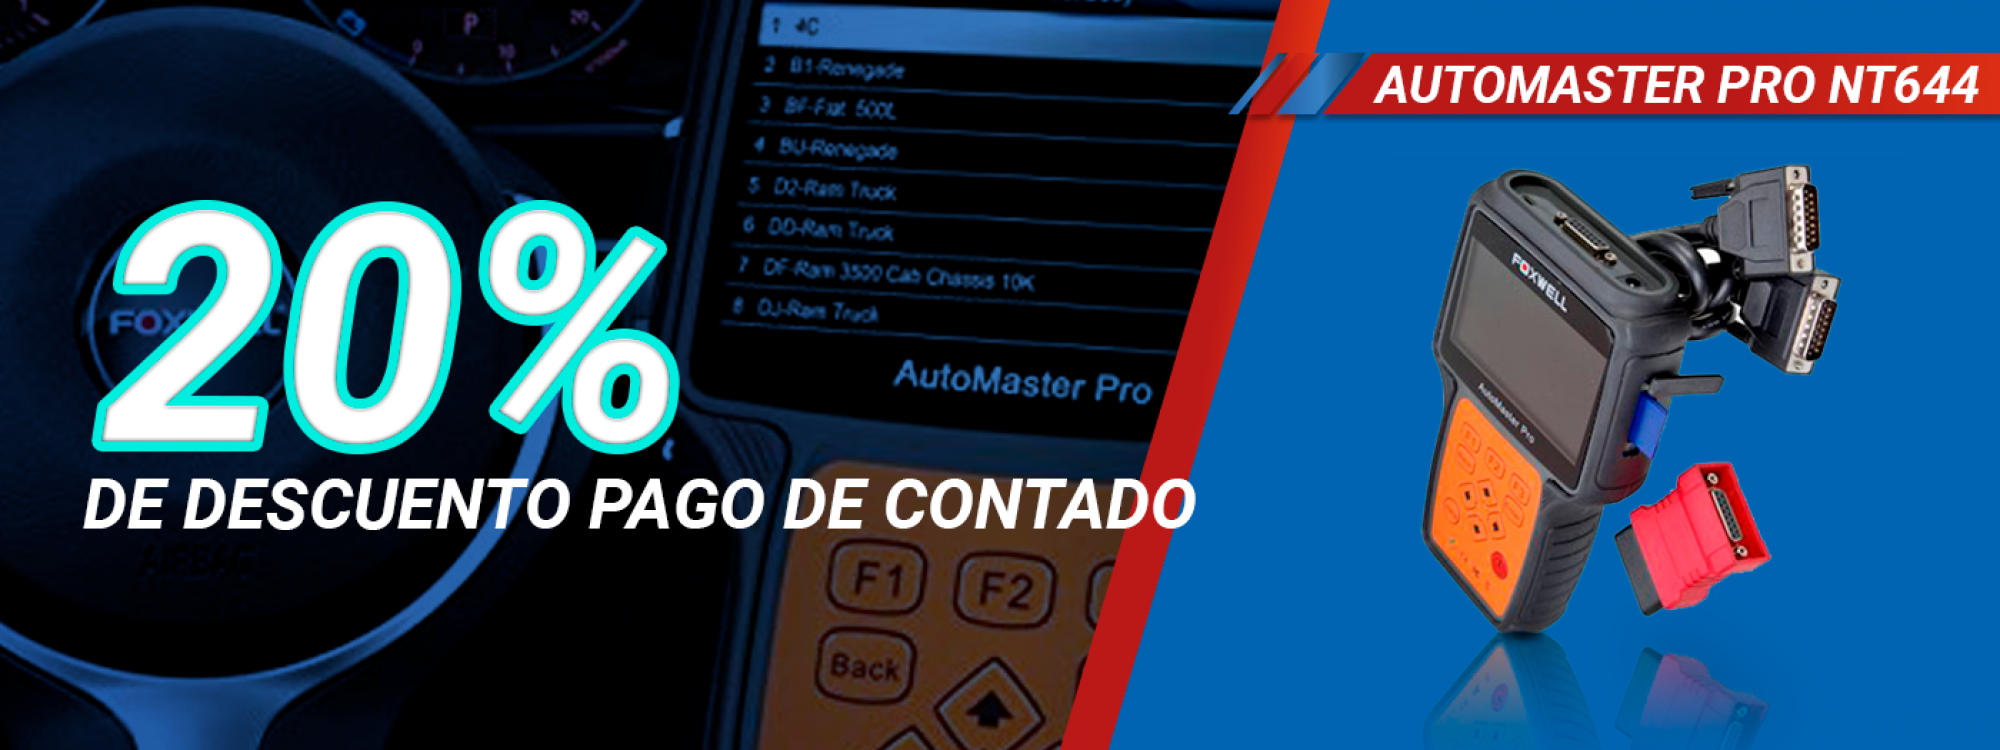 Automaster Pro NT644